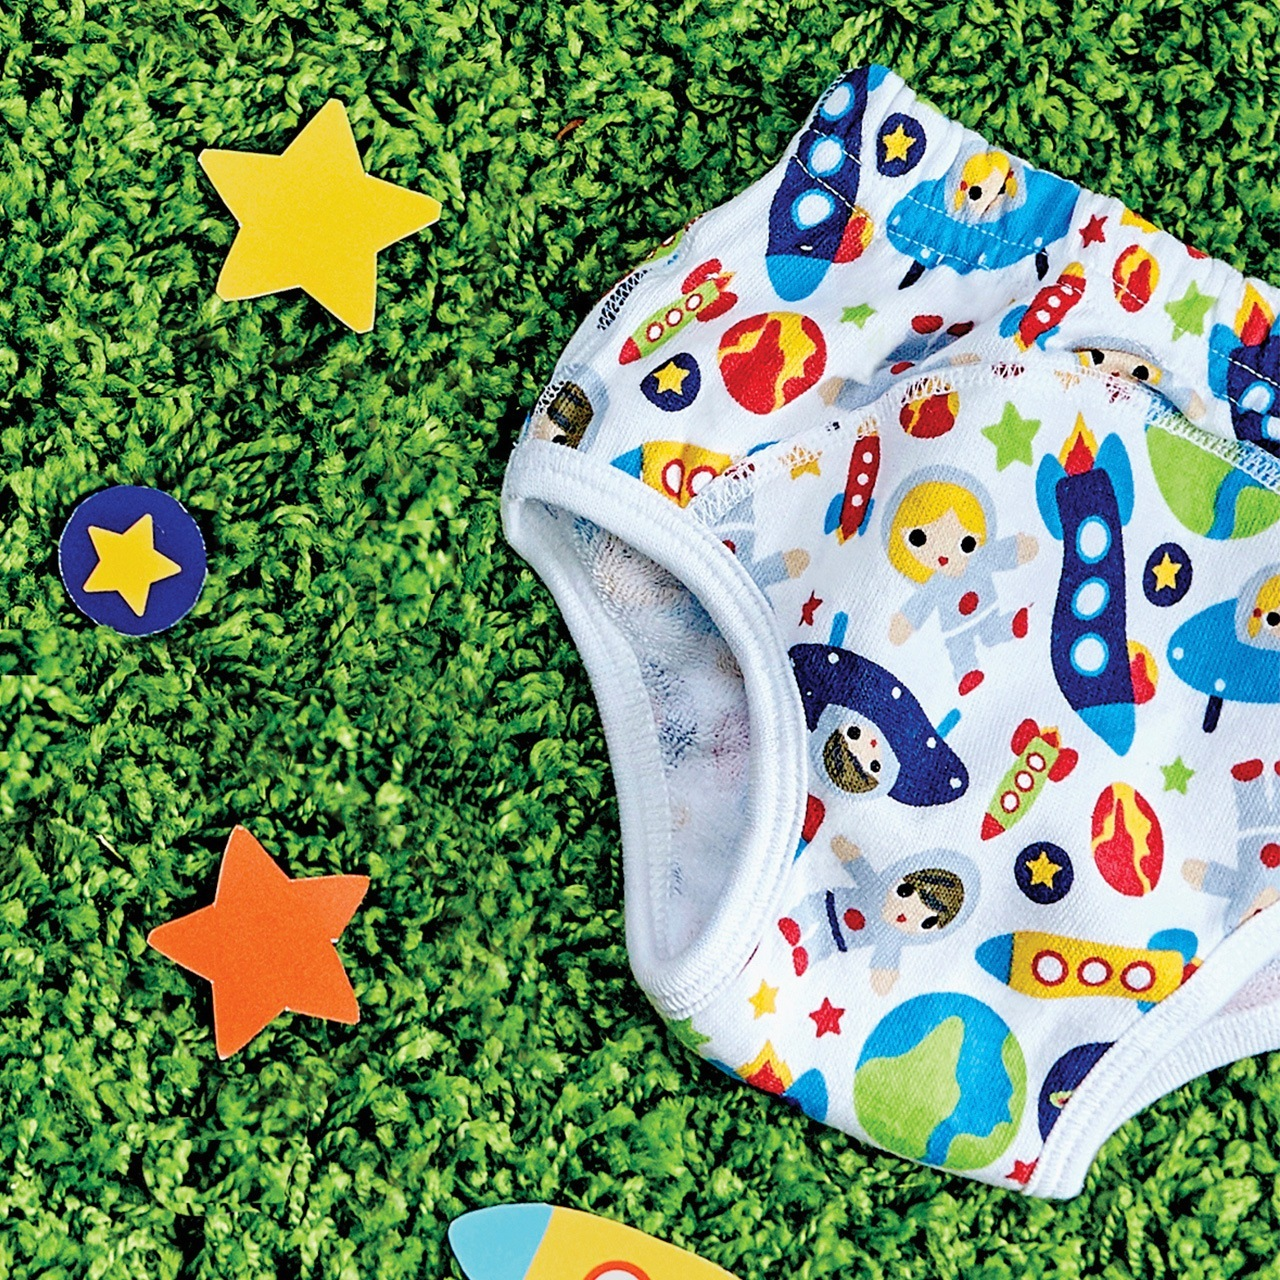 Bambino mio reusable potty training pants outer space kids for Outer space fabric uk